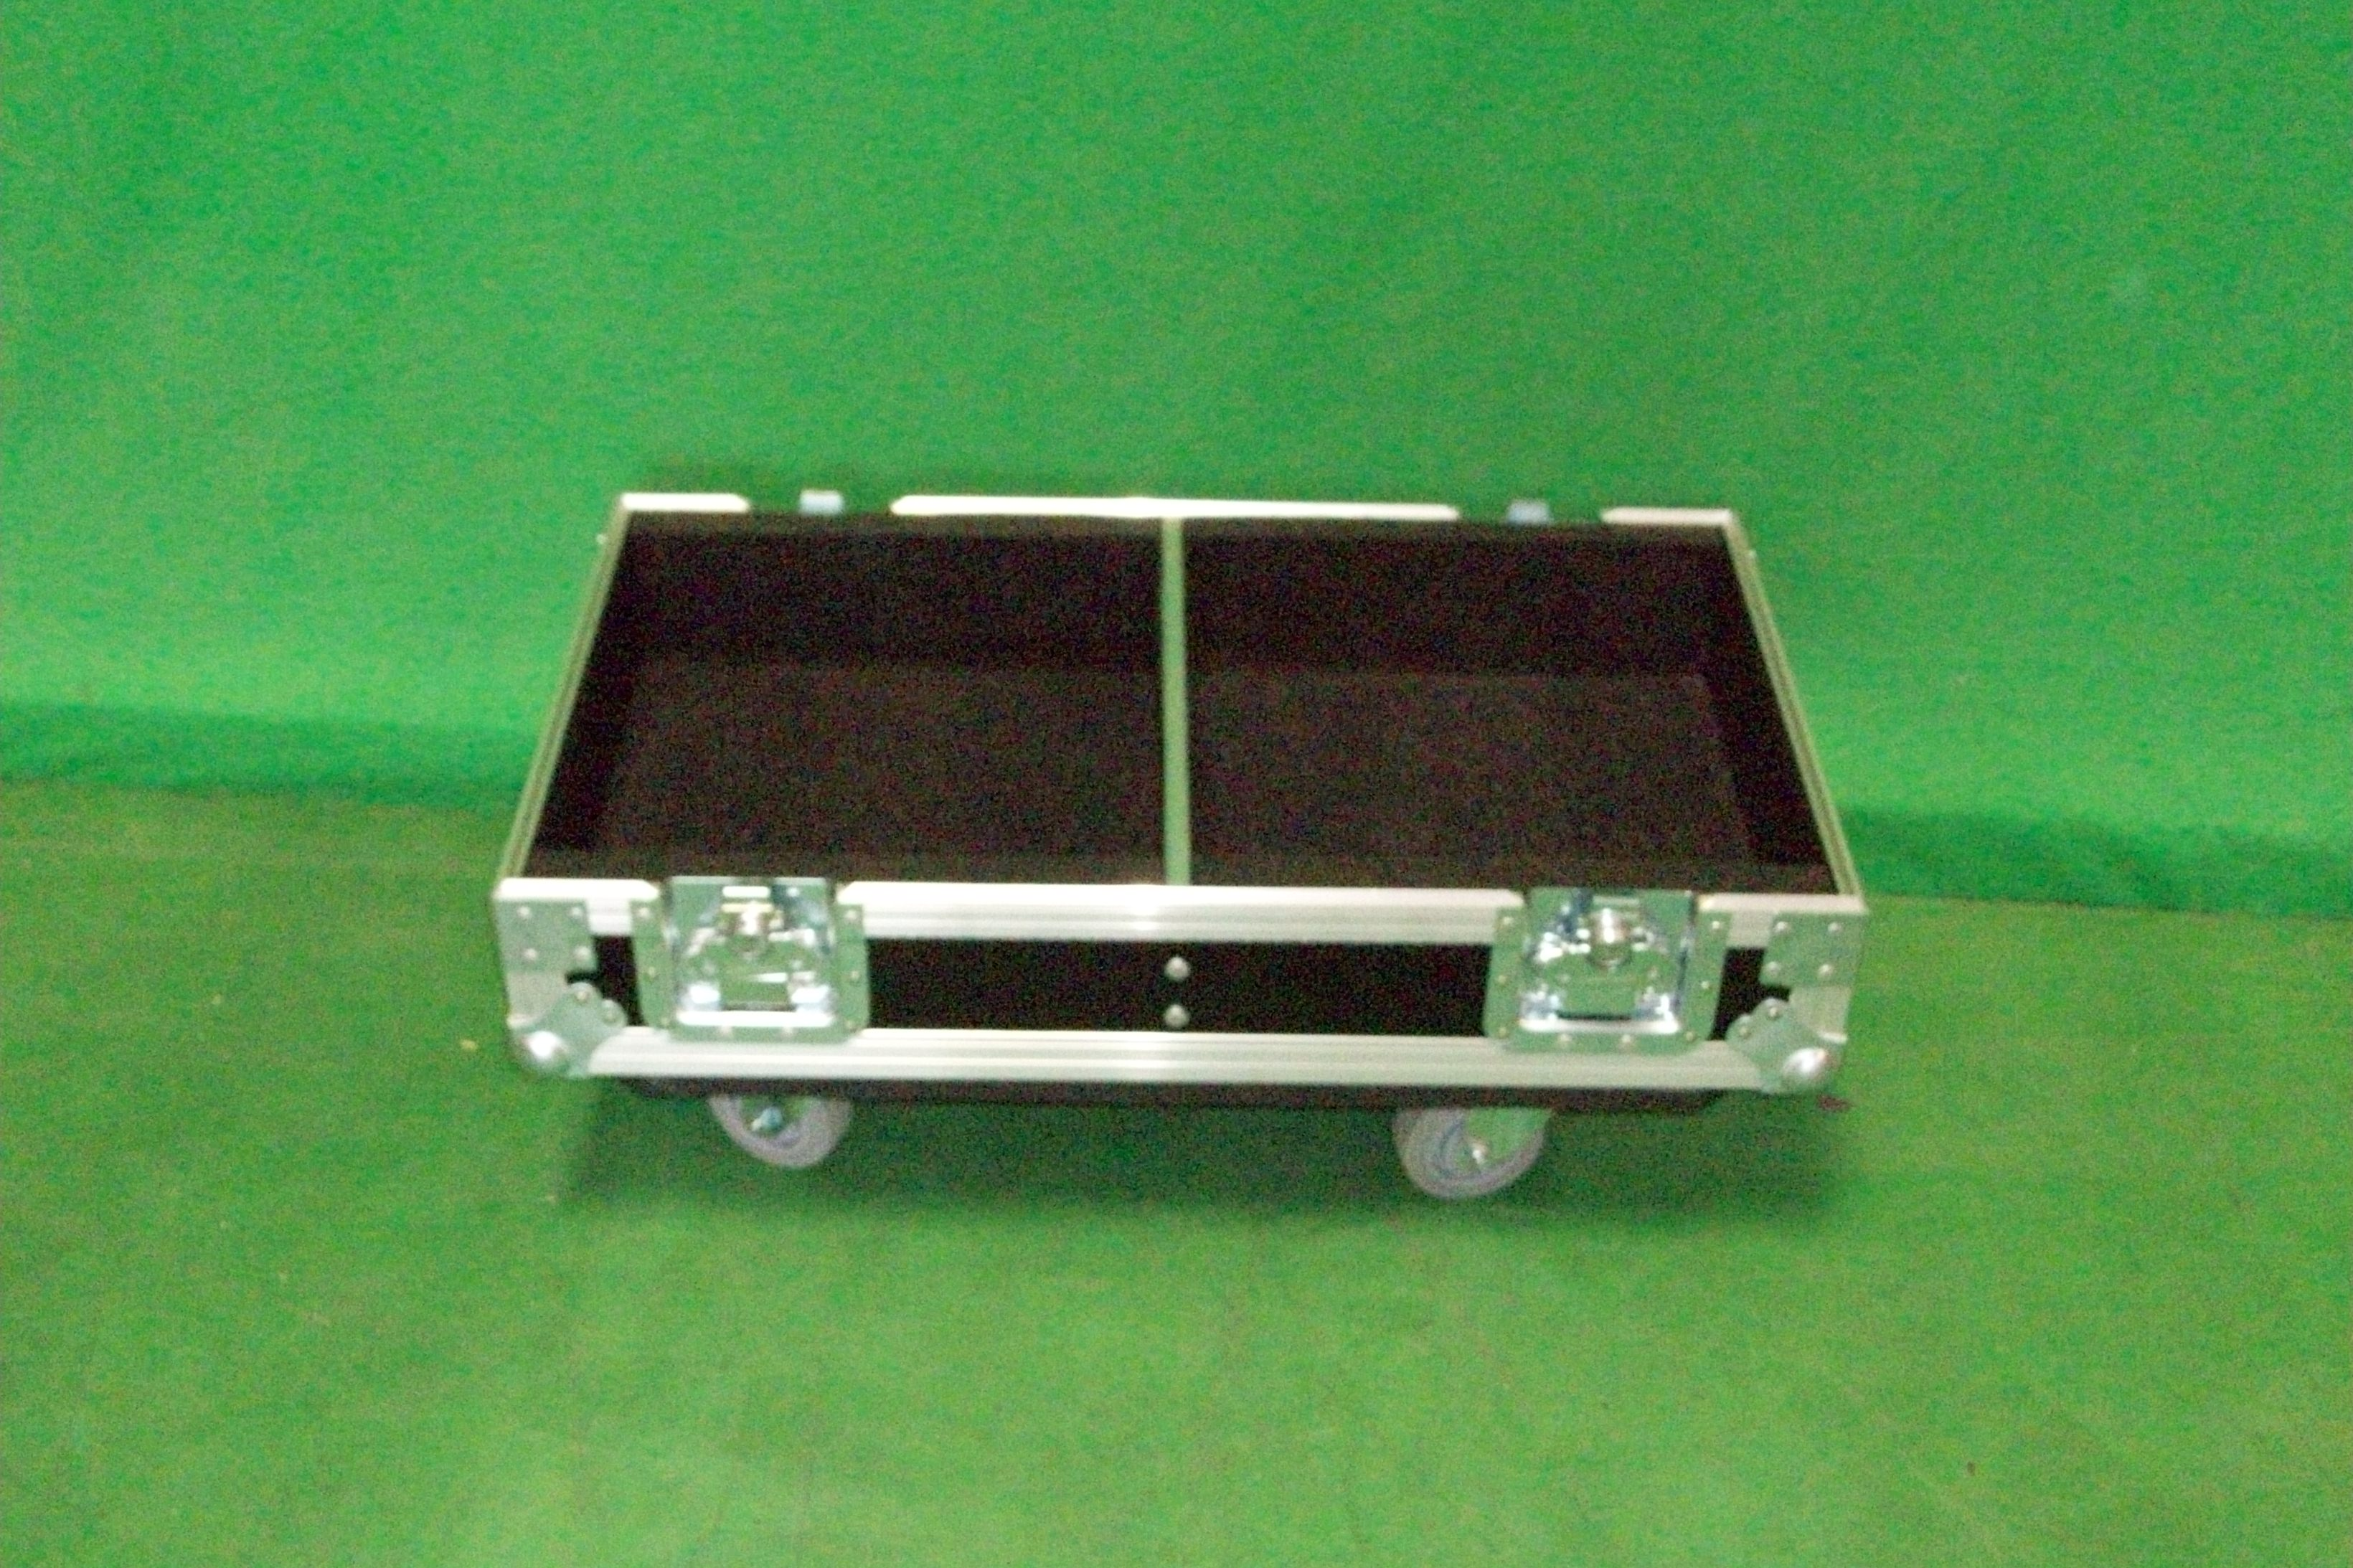 Print # 6494 - Custom Road Case for 2-Pack PRX612M Two-Way Multipurpose Self-Powered Speaker Kit By Nelson Case Corp